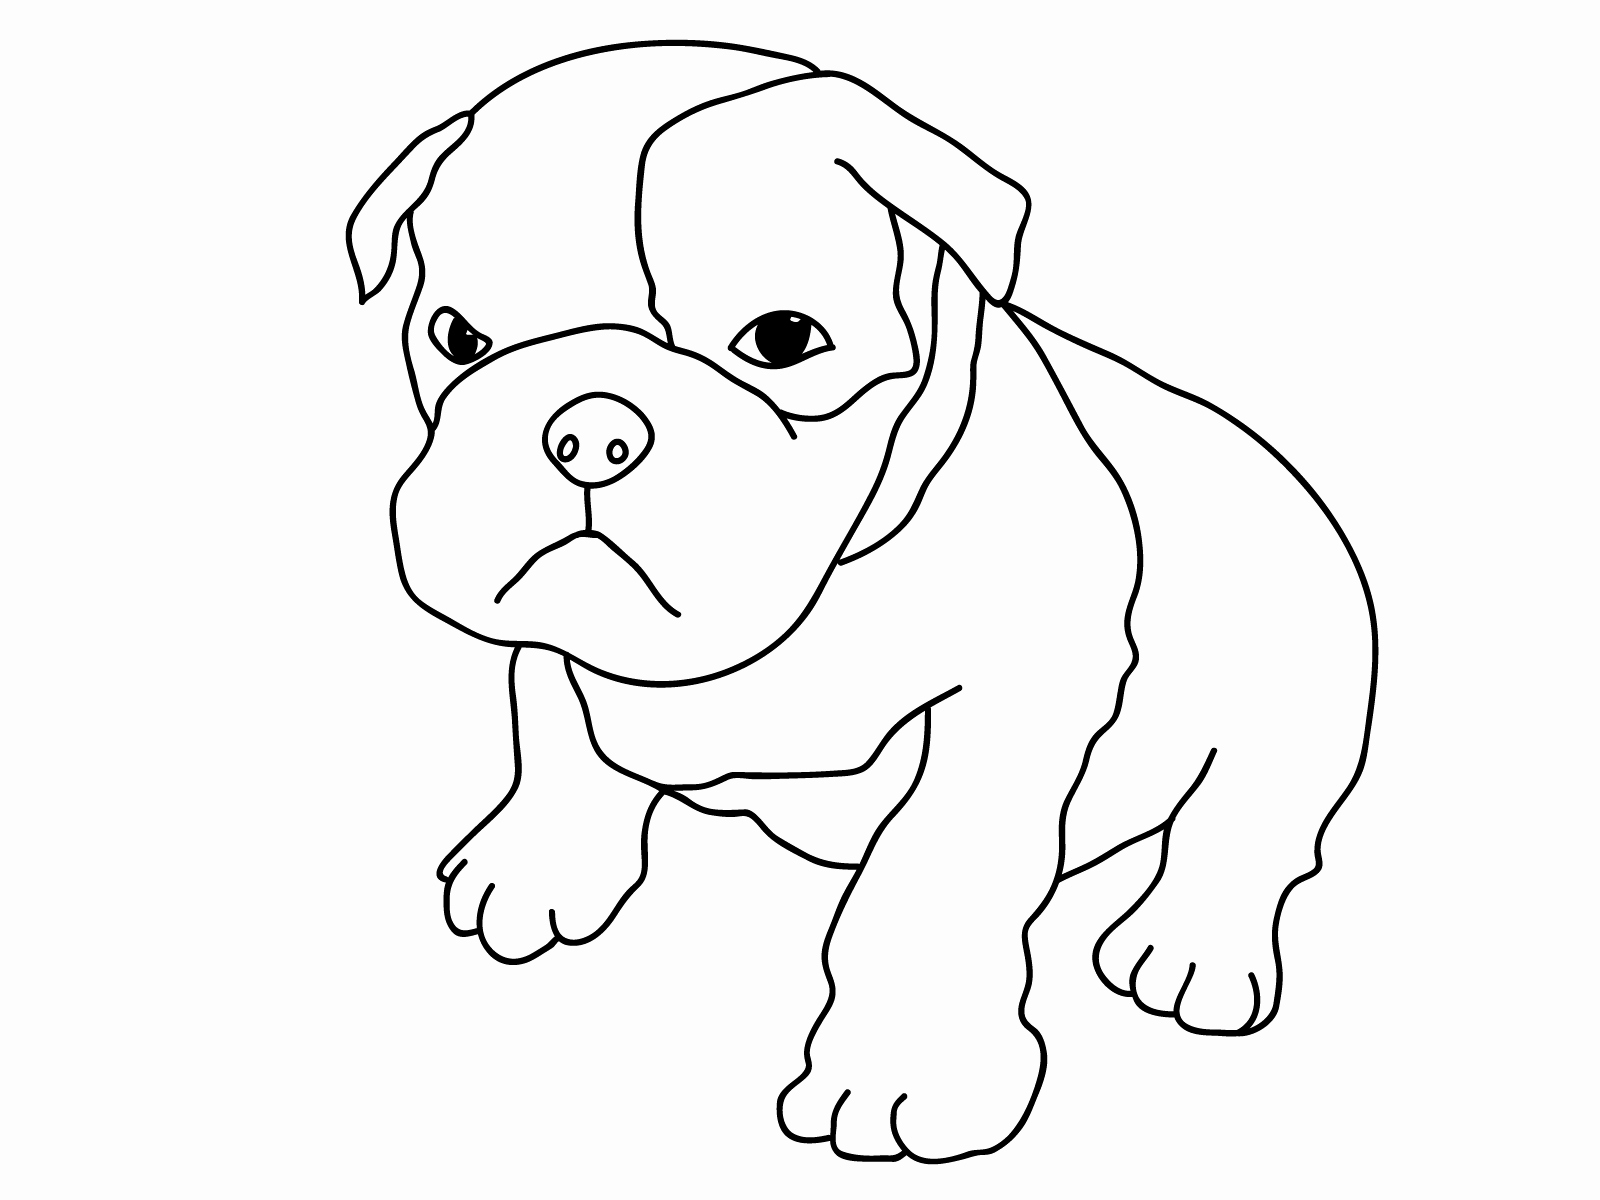 Coloring Pages Of Puppies Awesome Free Printable Dog Coloring Pages for Kids